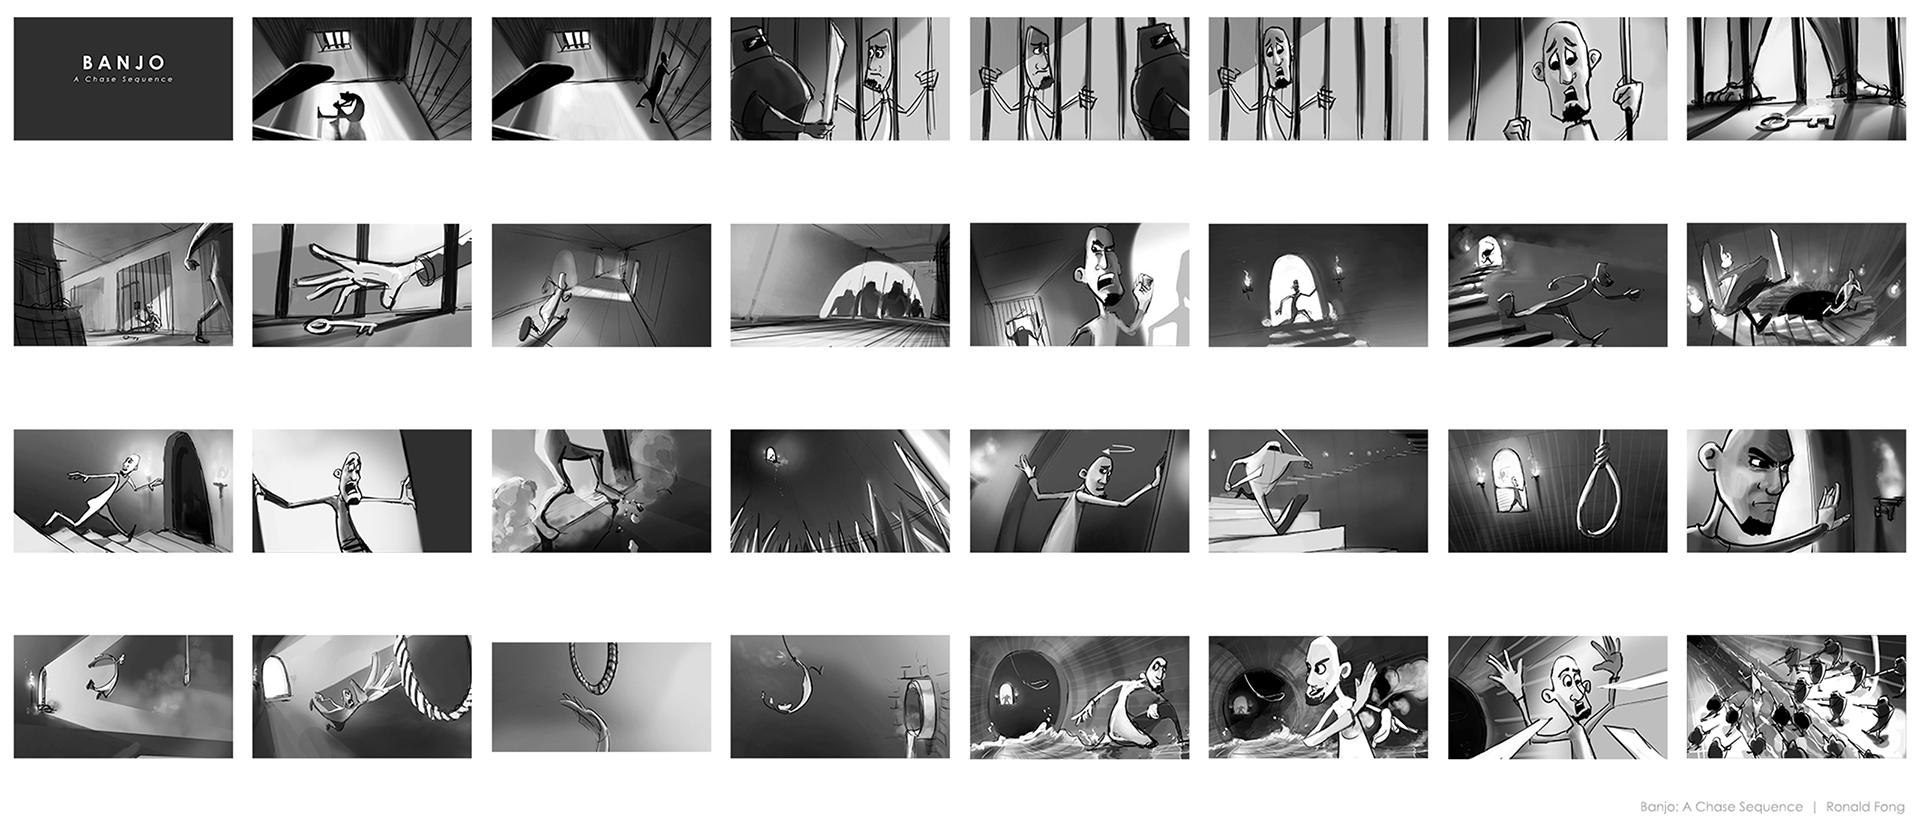 Banjo Animation Sequence Storyboards